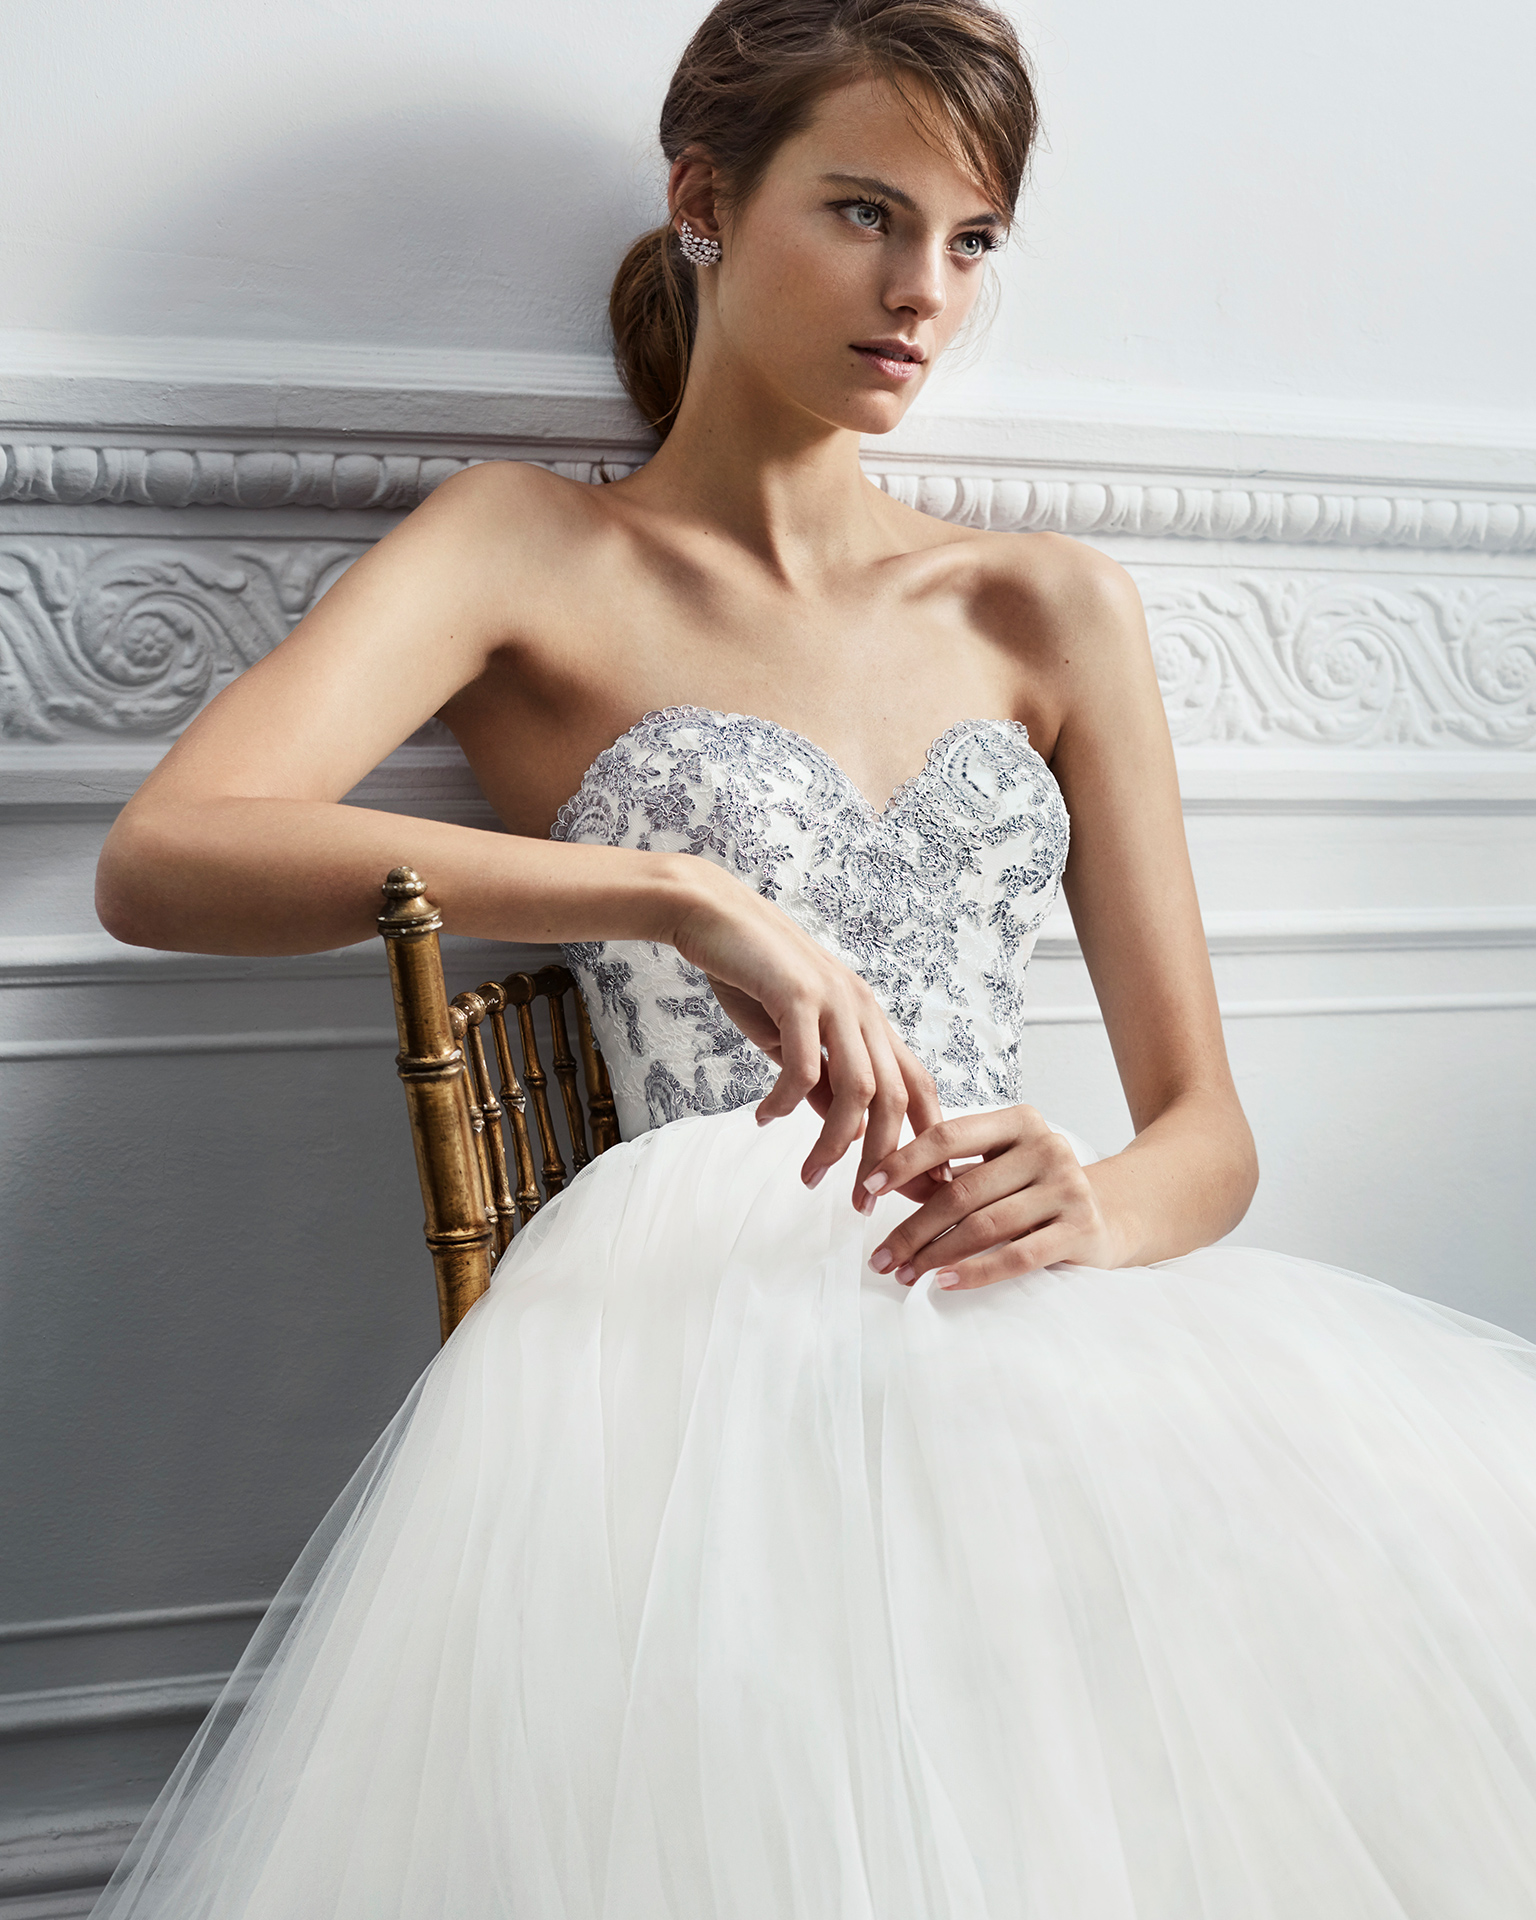 Princess-style lace wedding dress with sweetheart neckline and full tulle skirt, in natural/silver and natural.